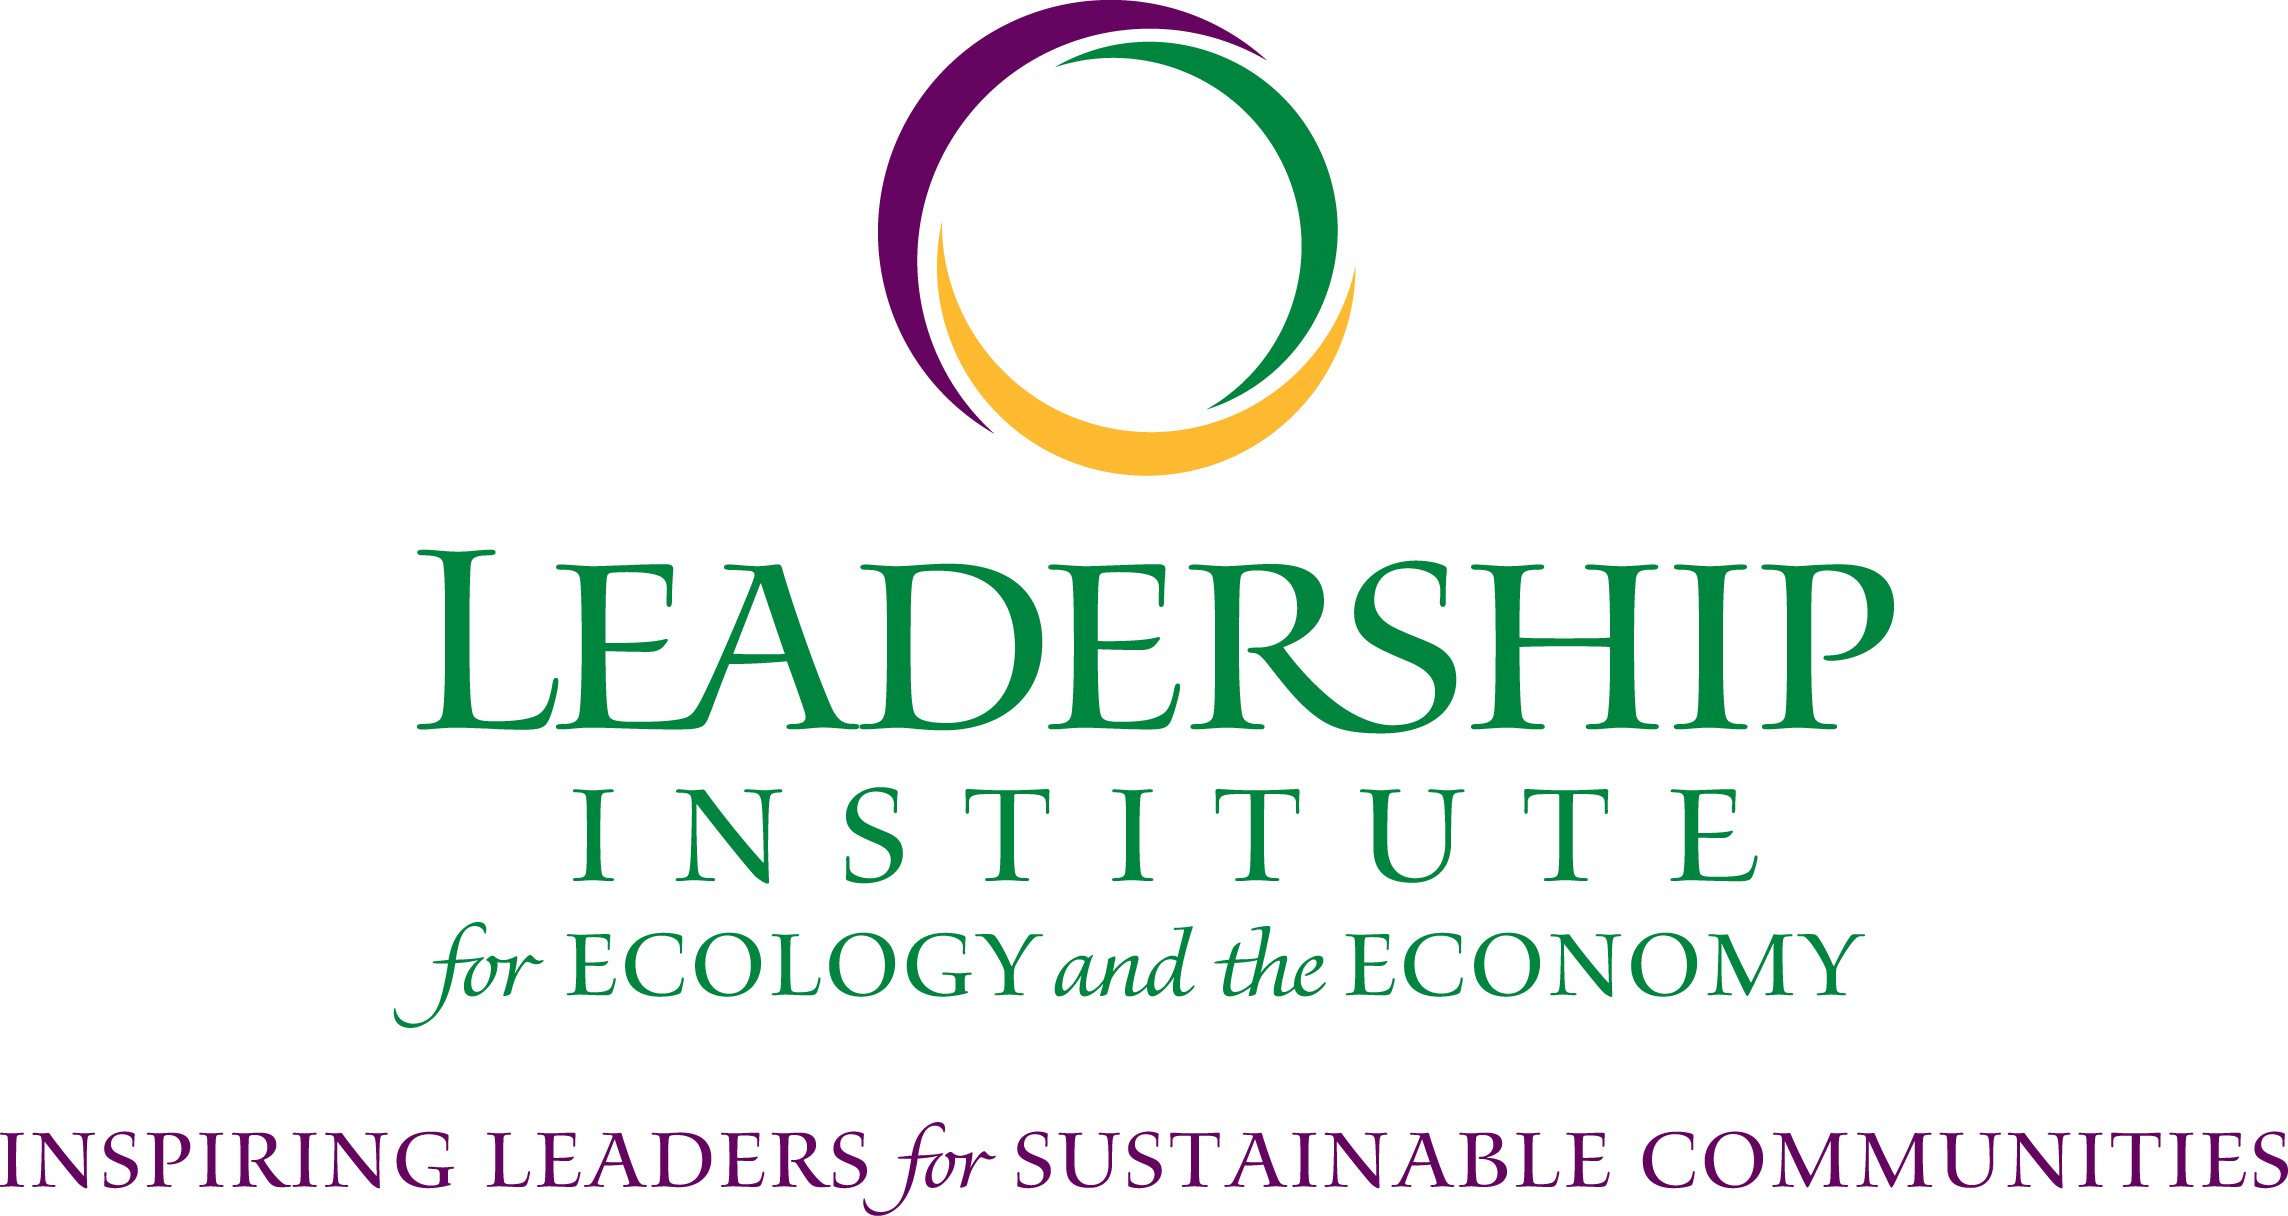 Leadership for a Sustainable Future - 2013-2014 Applications Open